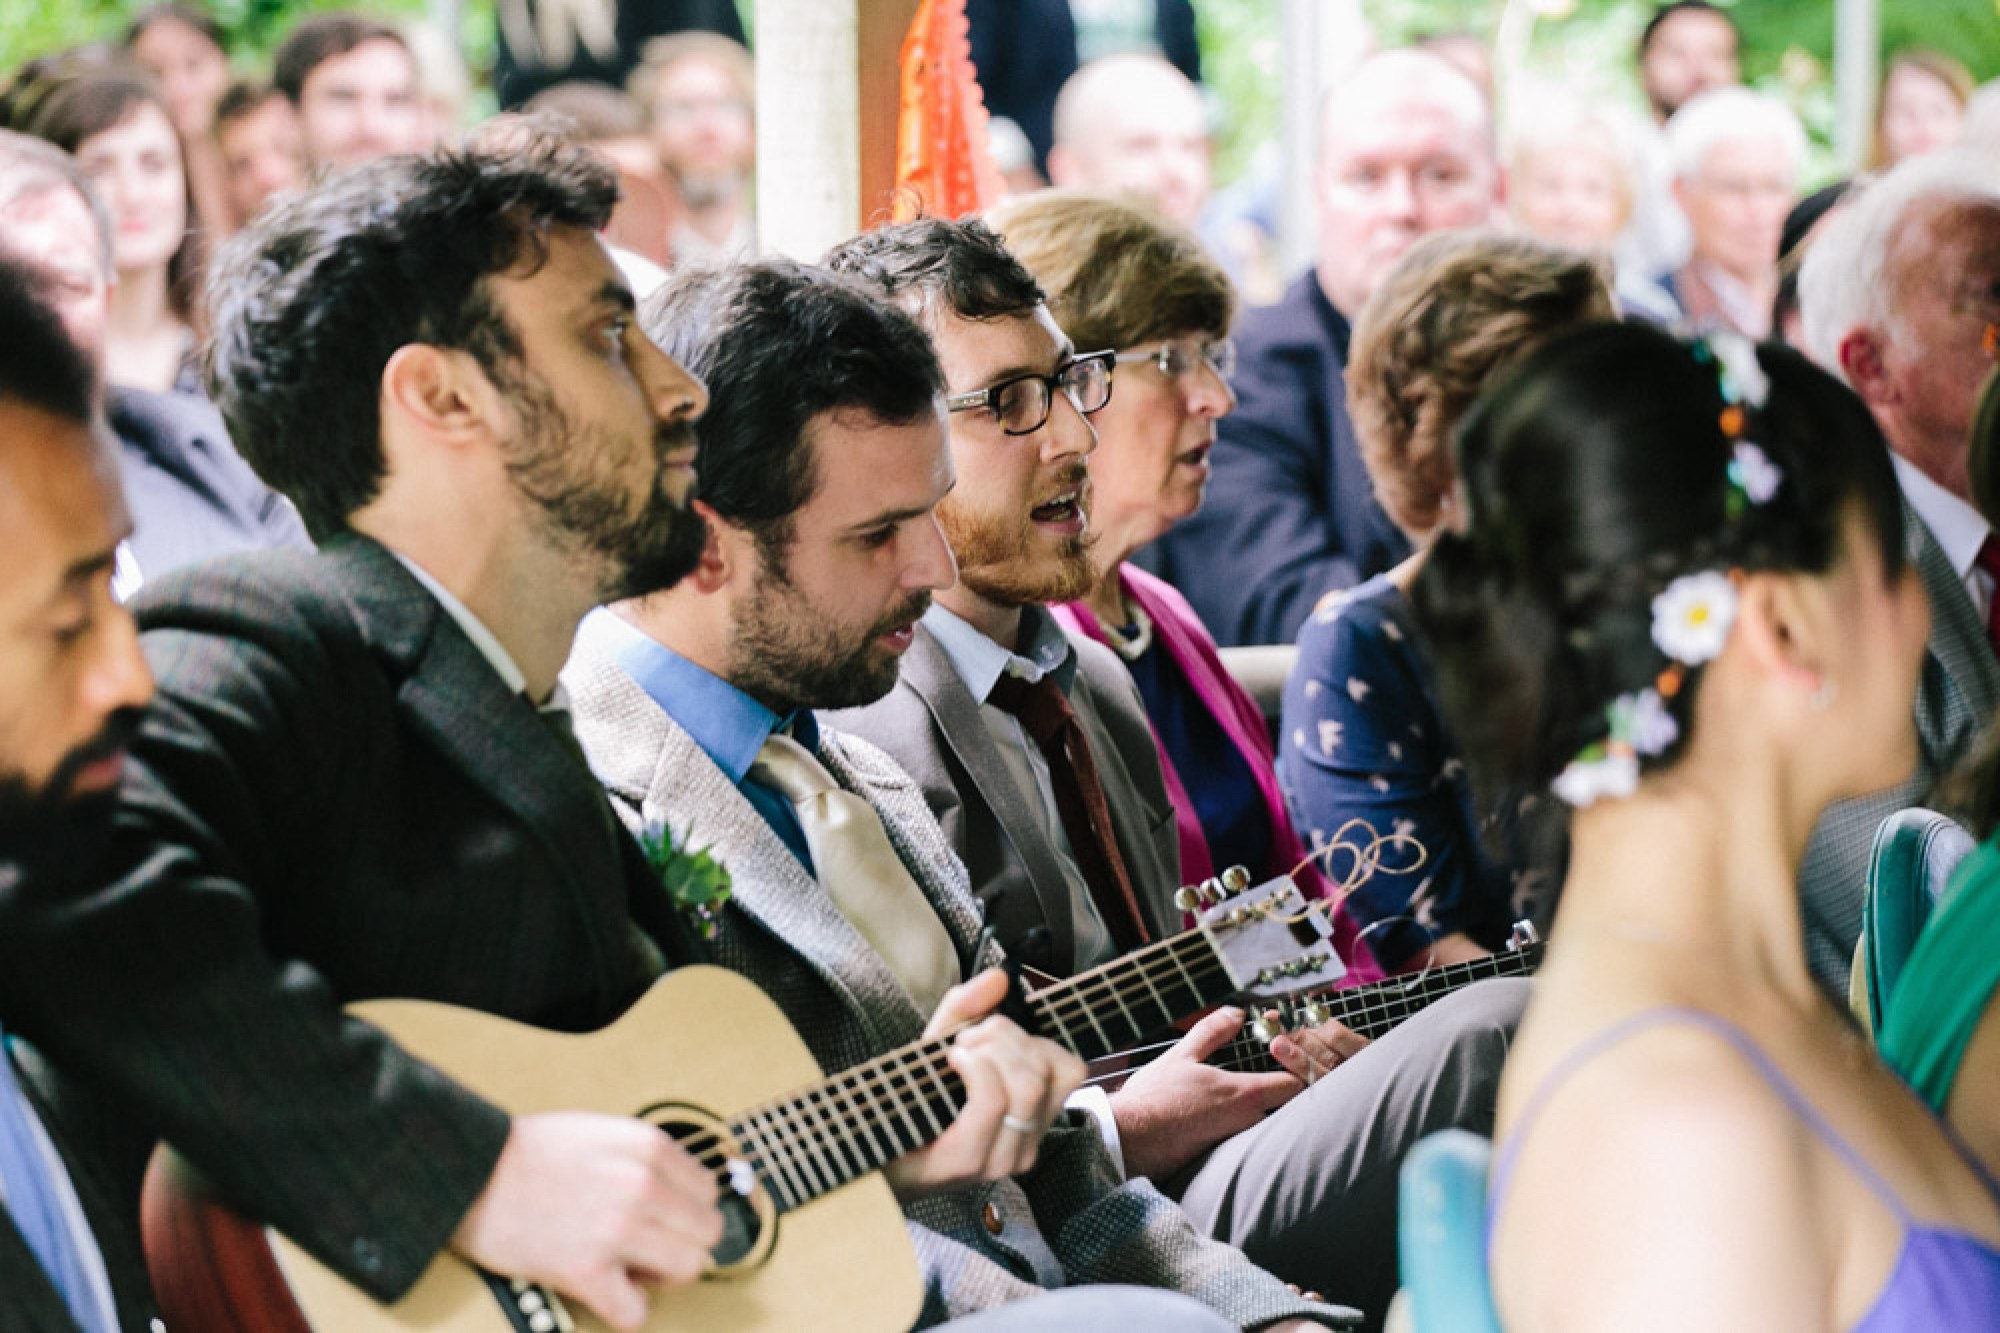 Singing bridges and Balloons at our wedding